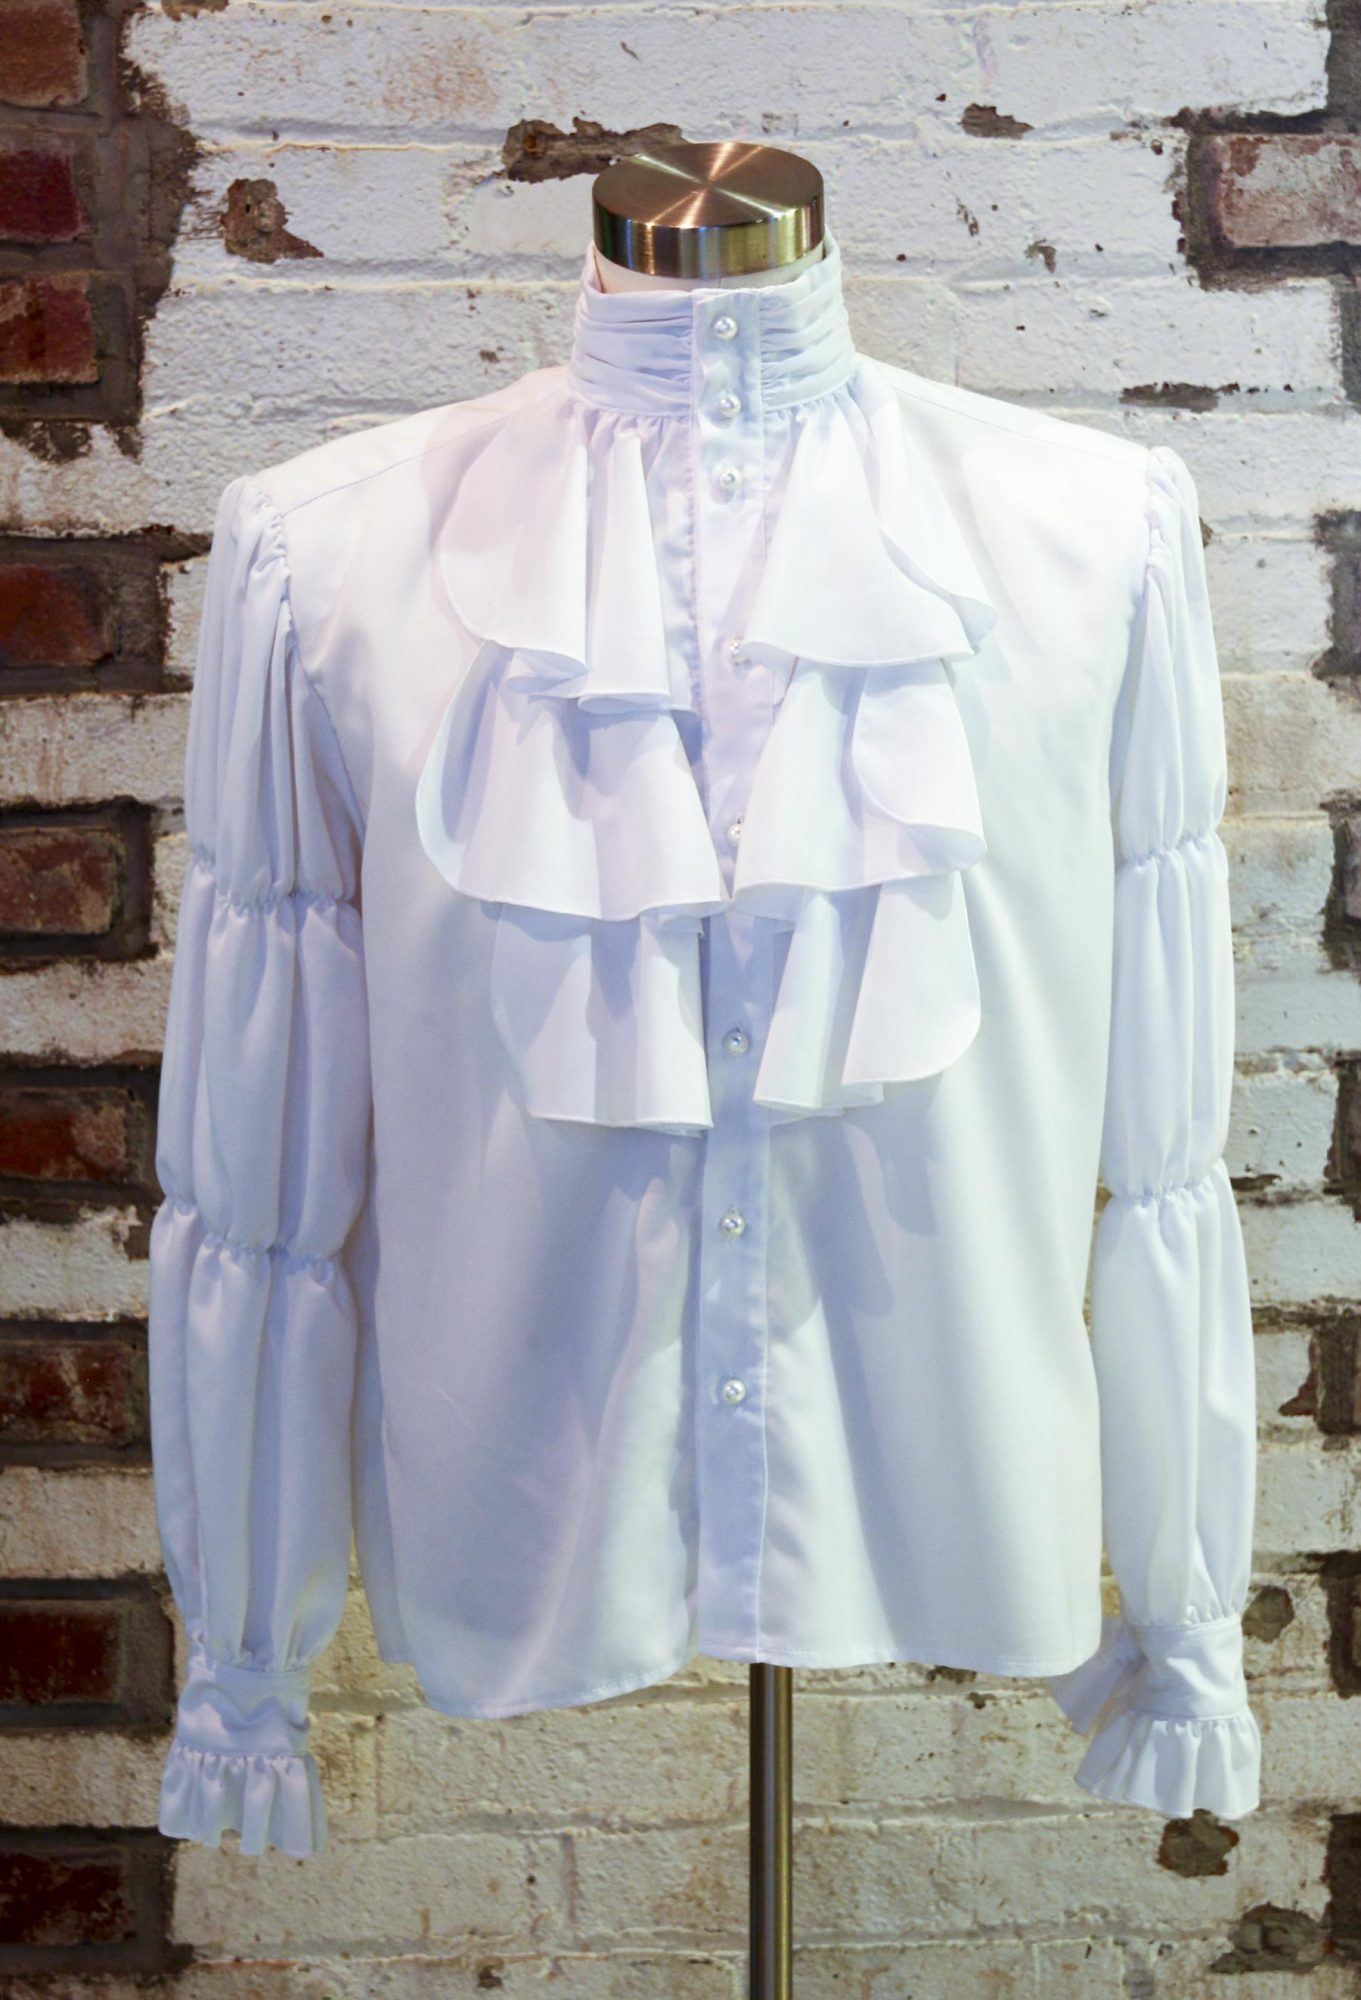 Jerry Seinfeld's puffy shirt from Seinfeld